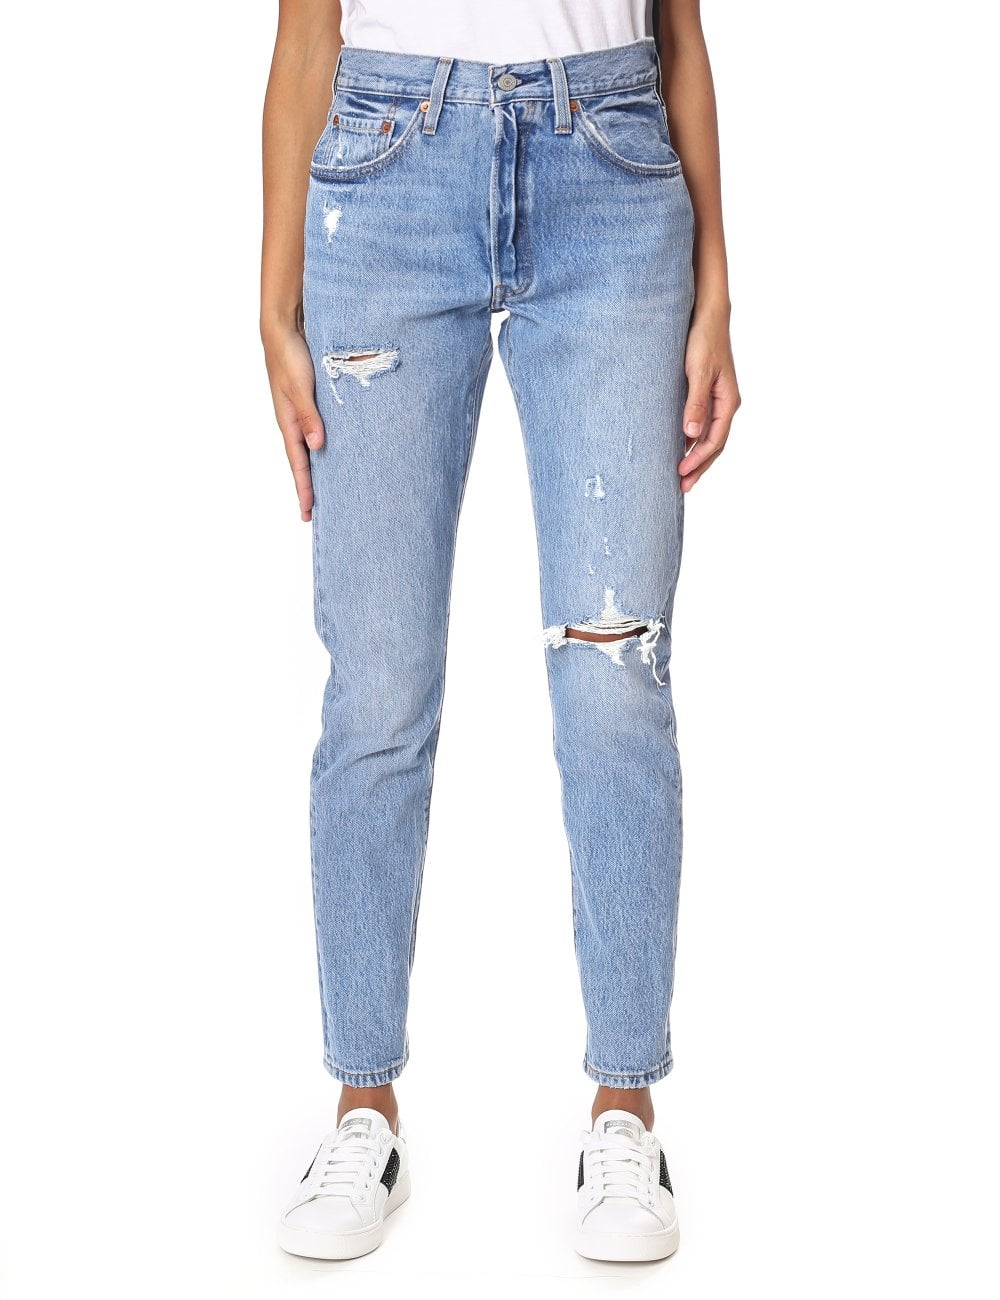 a1822f87 Levi's Women's 501 Skinny Fit Jeans